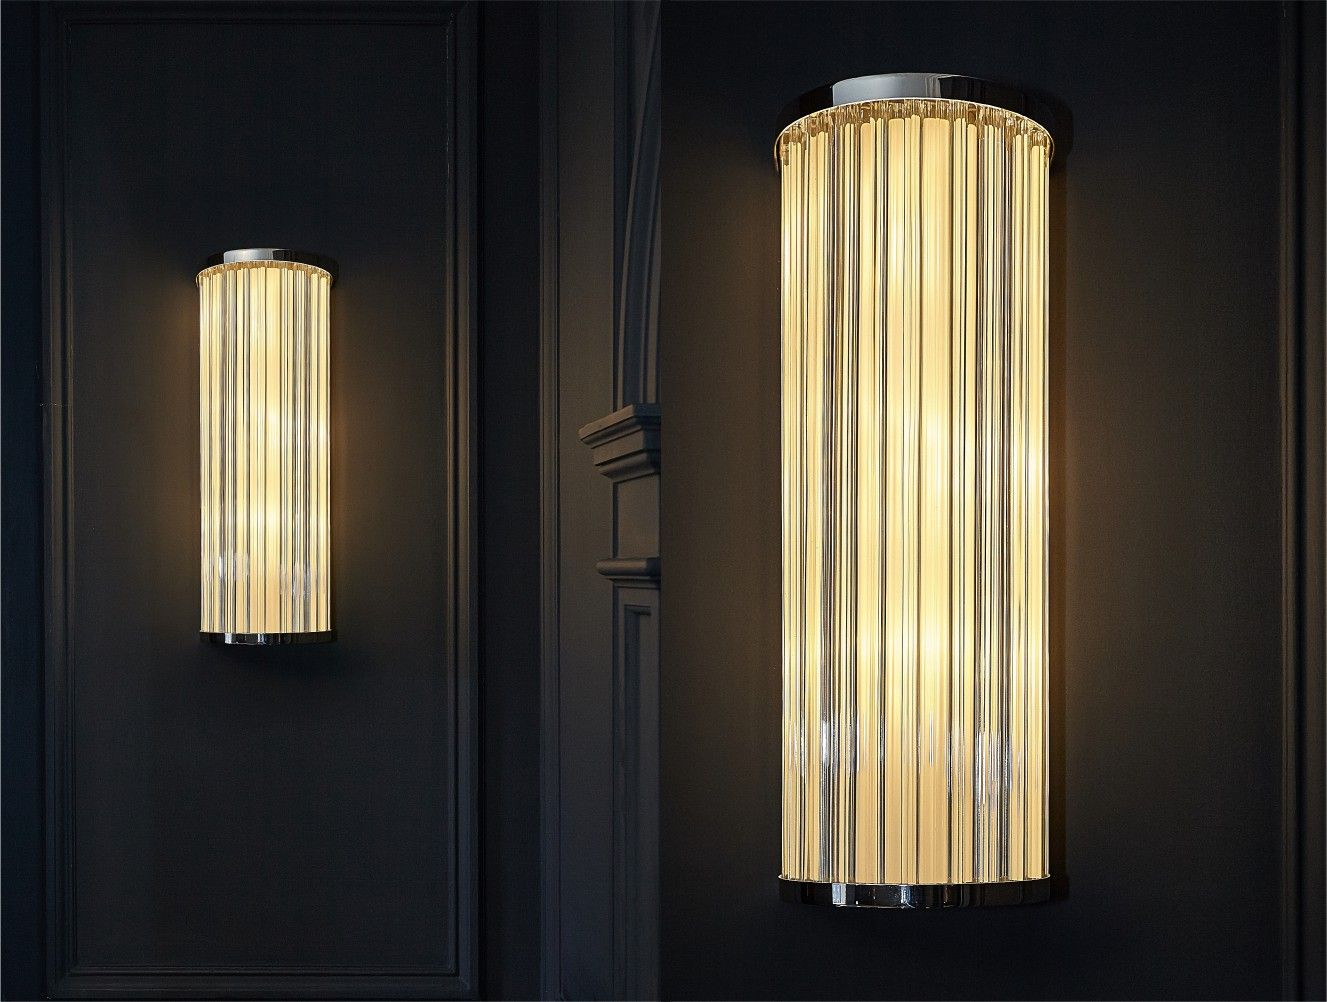 Rocco borghese principe applique wall sconce product: wall lamp